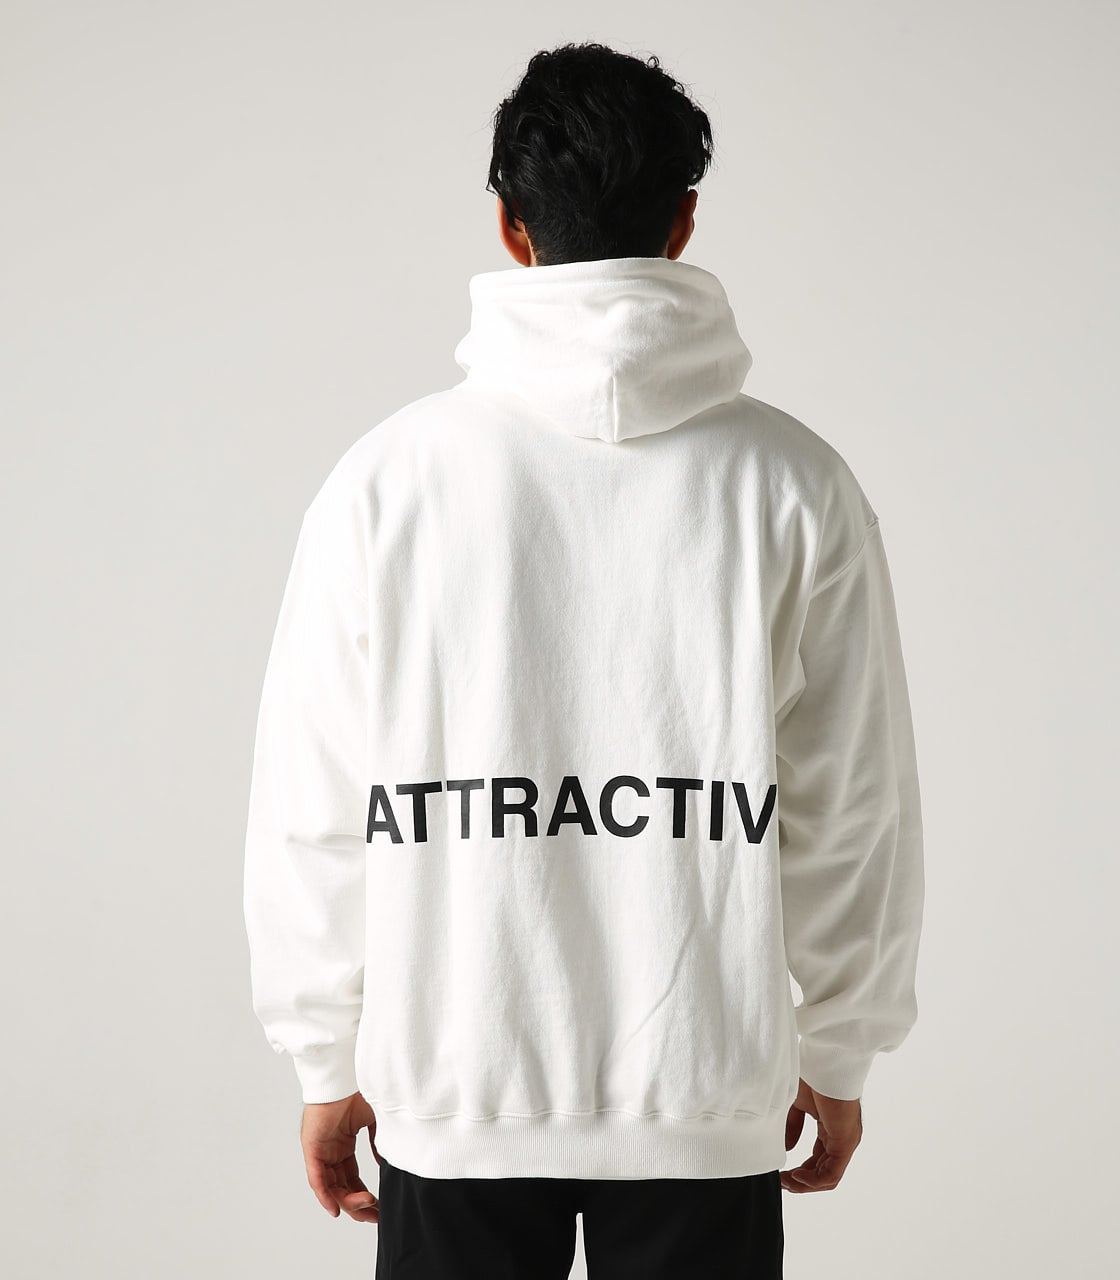 【AZUL BY MOUSSY】ATTRACTIVE ビッグパーカー 詳細画像 WHT 7